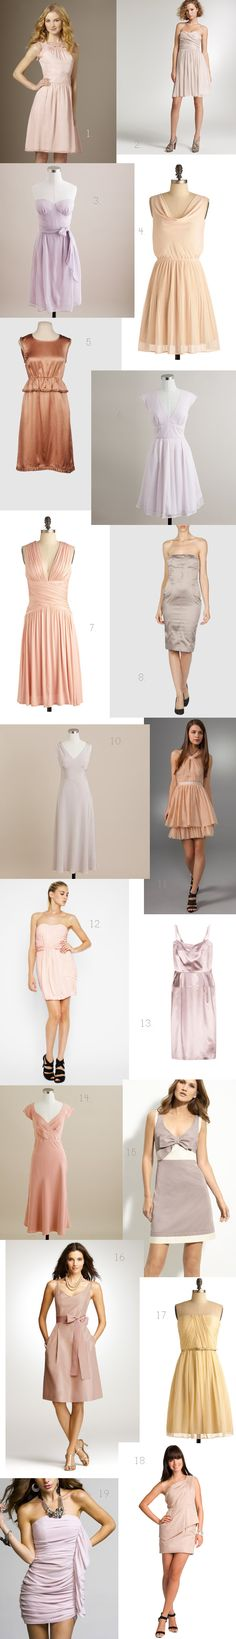 bridesmaid or wedding dresses